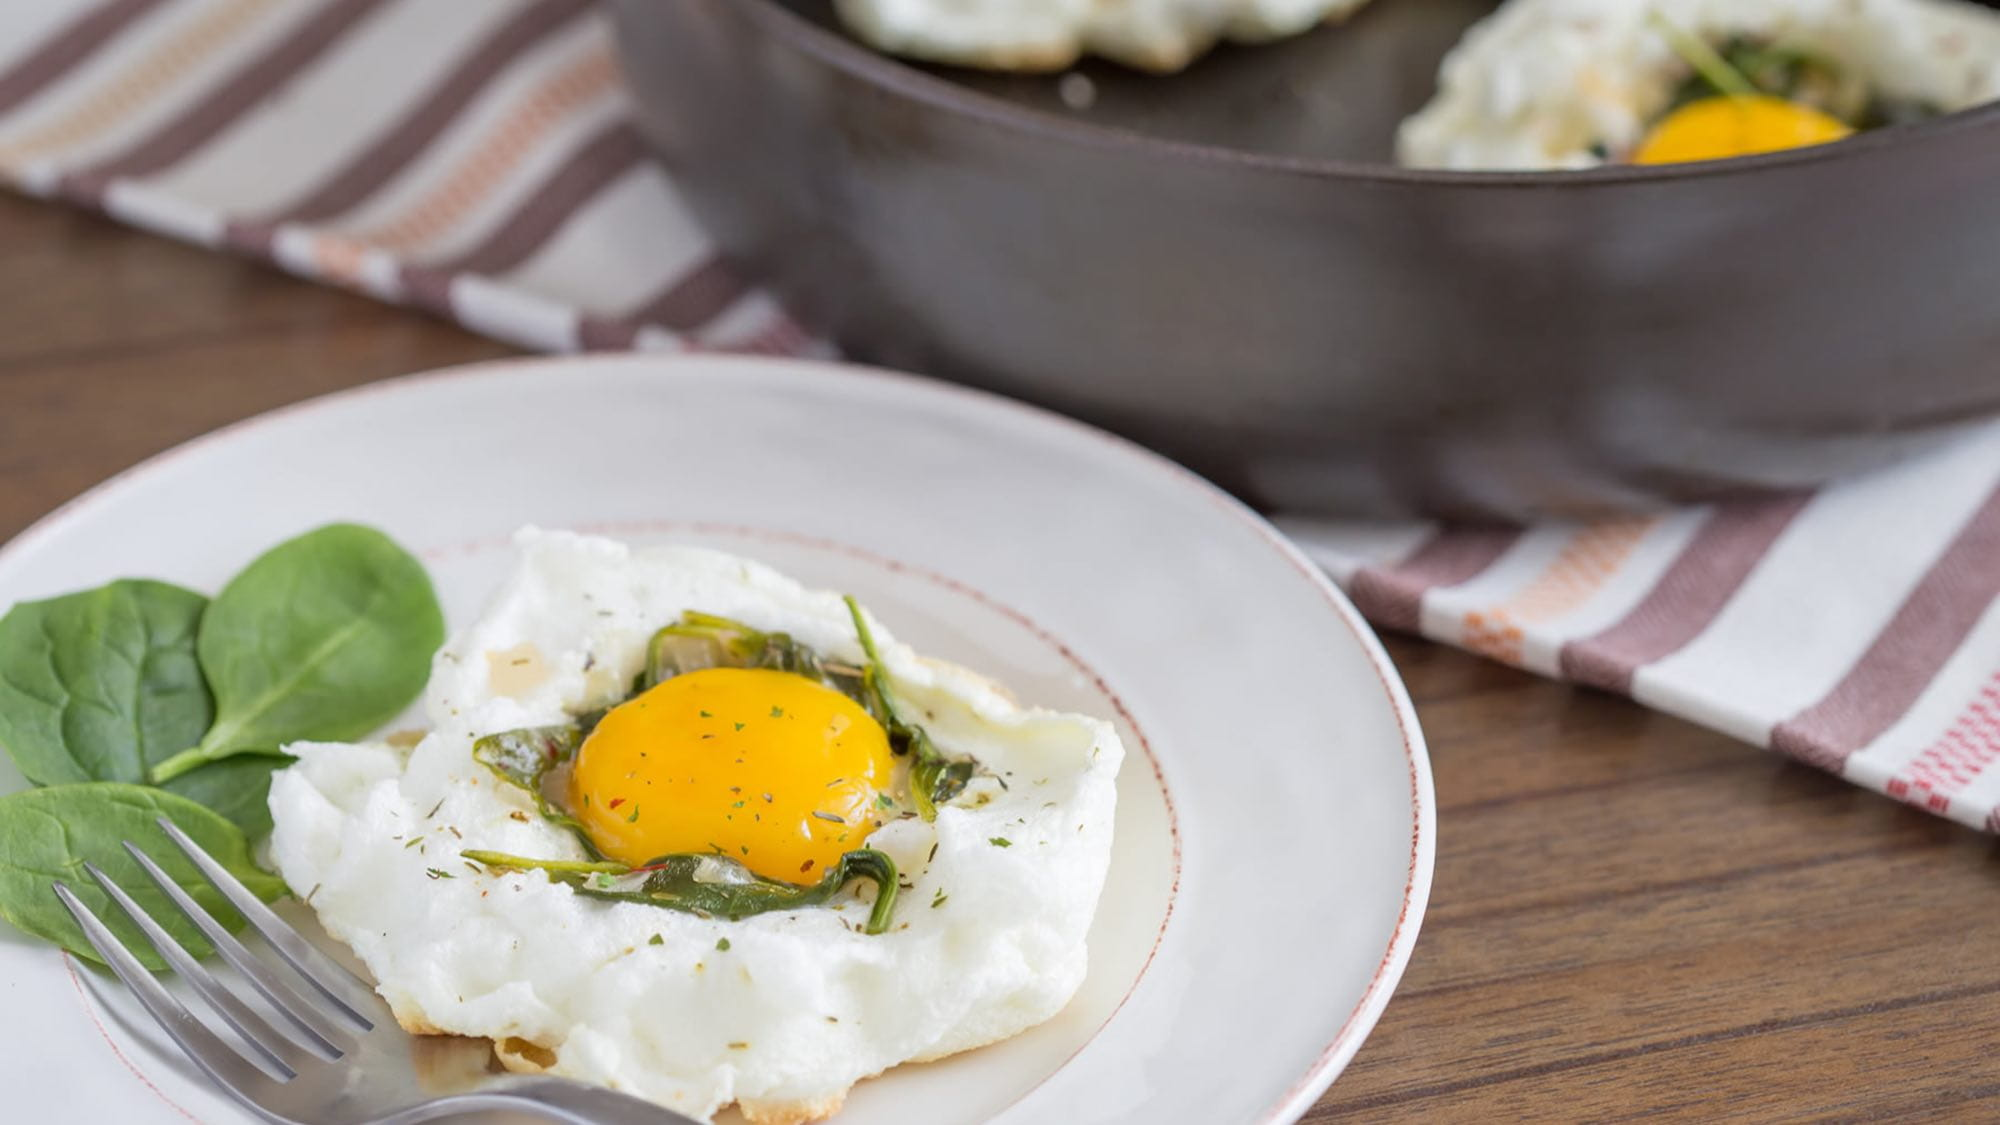 spinach-and-shallot-egg-clouds.jpg